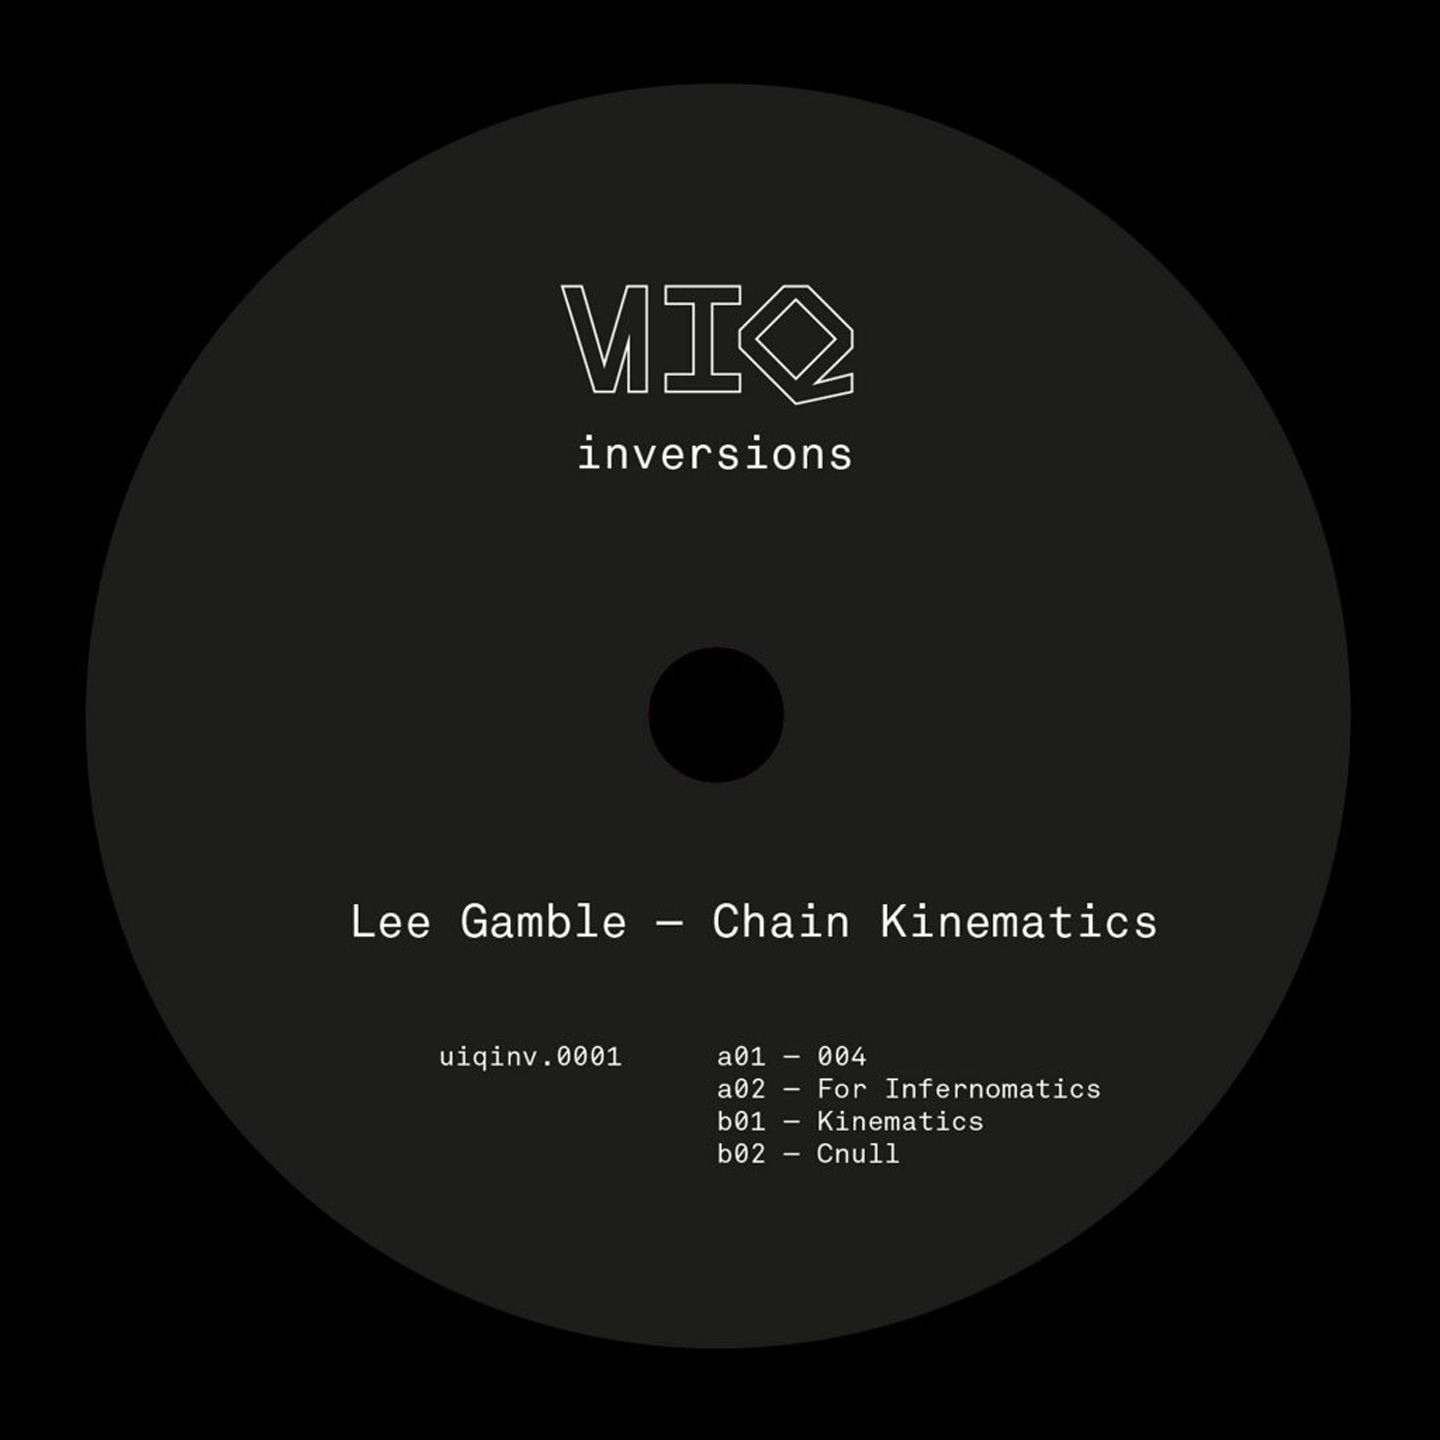 Lee Gamble - Chain Kinematics